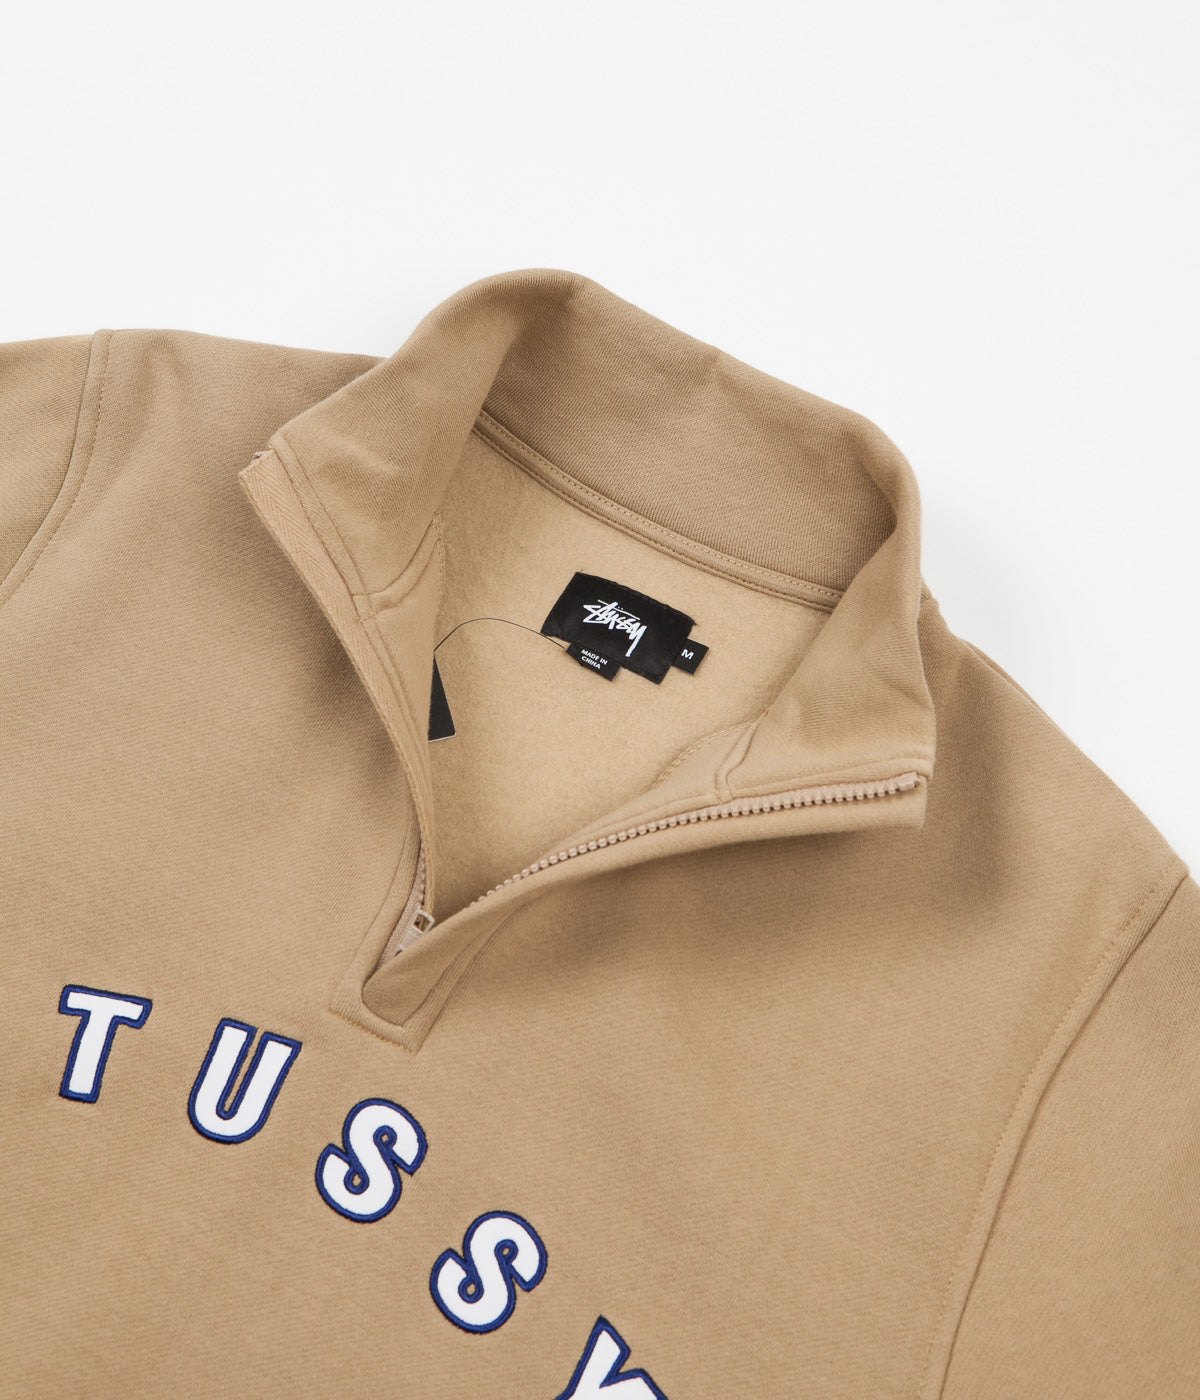 Stussy Quarter Zip Mock Neck Sweatshirt - Tan